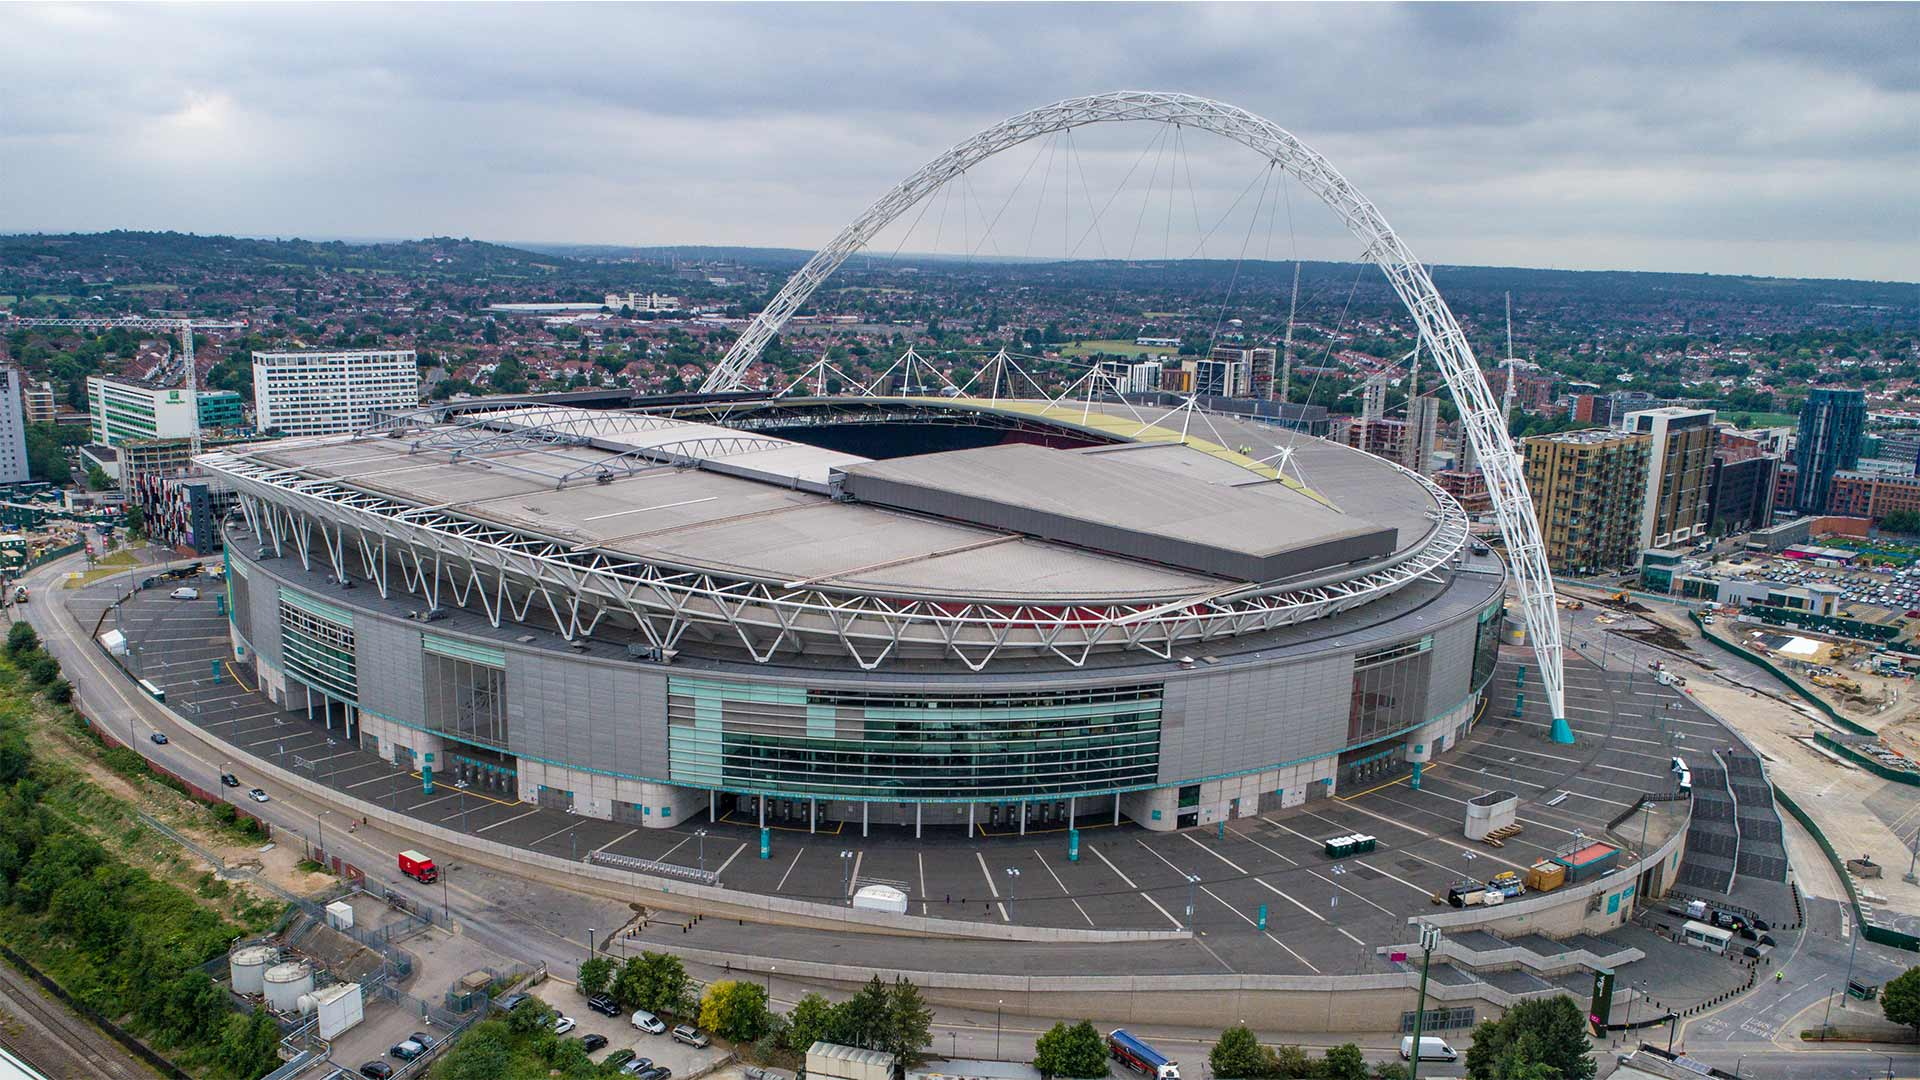 Wembley Stadion – Haas Strahlcenter